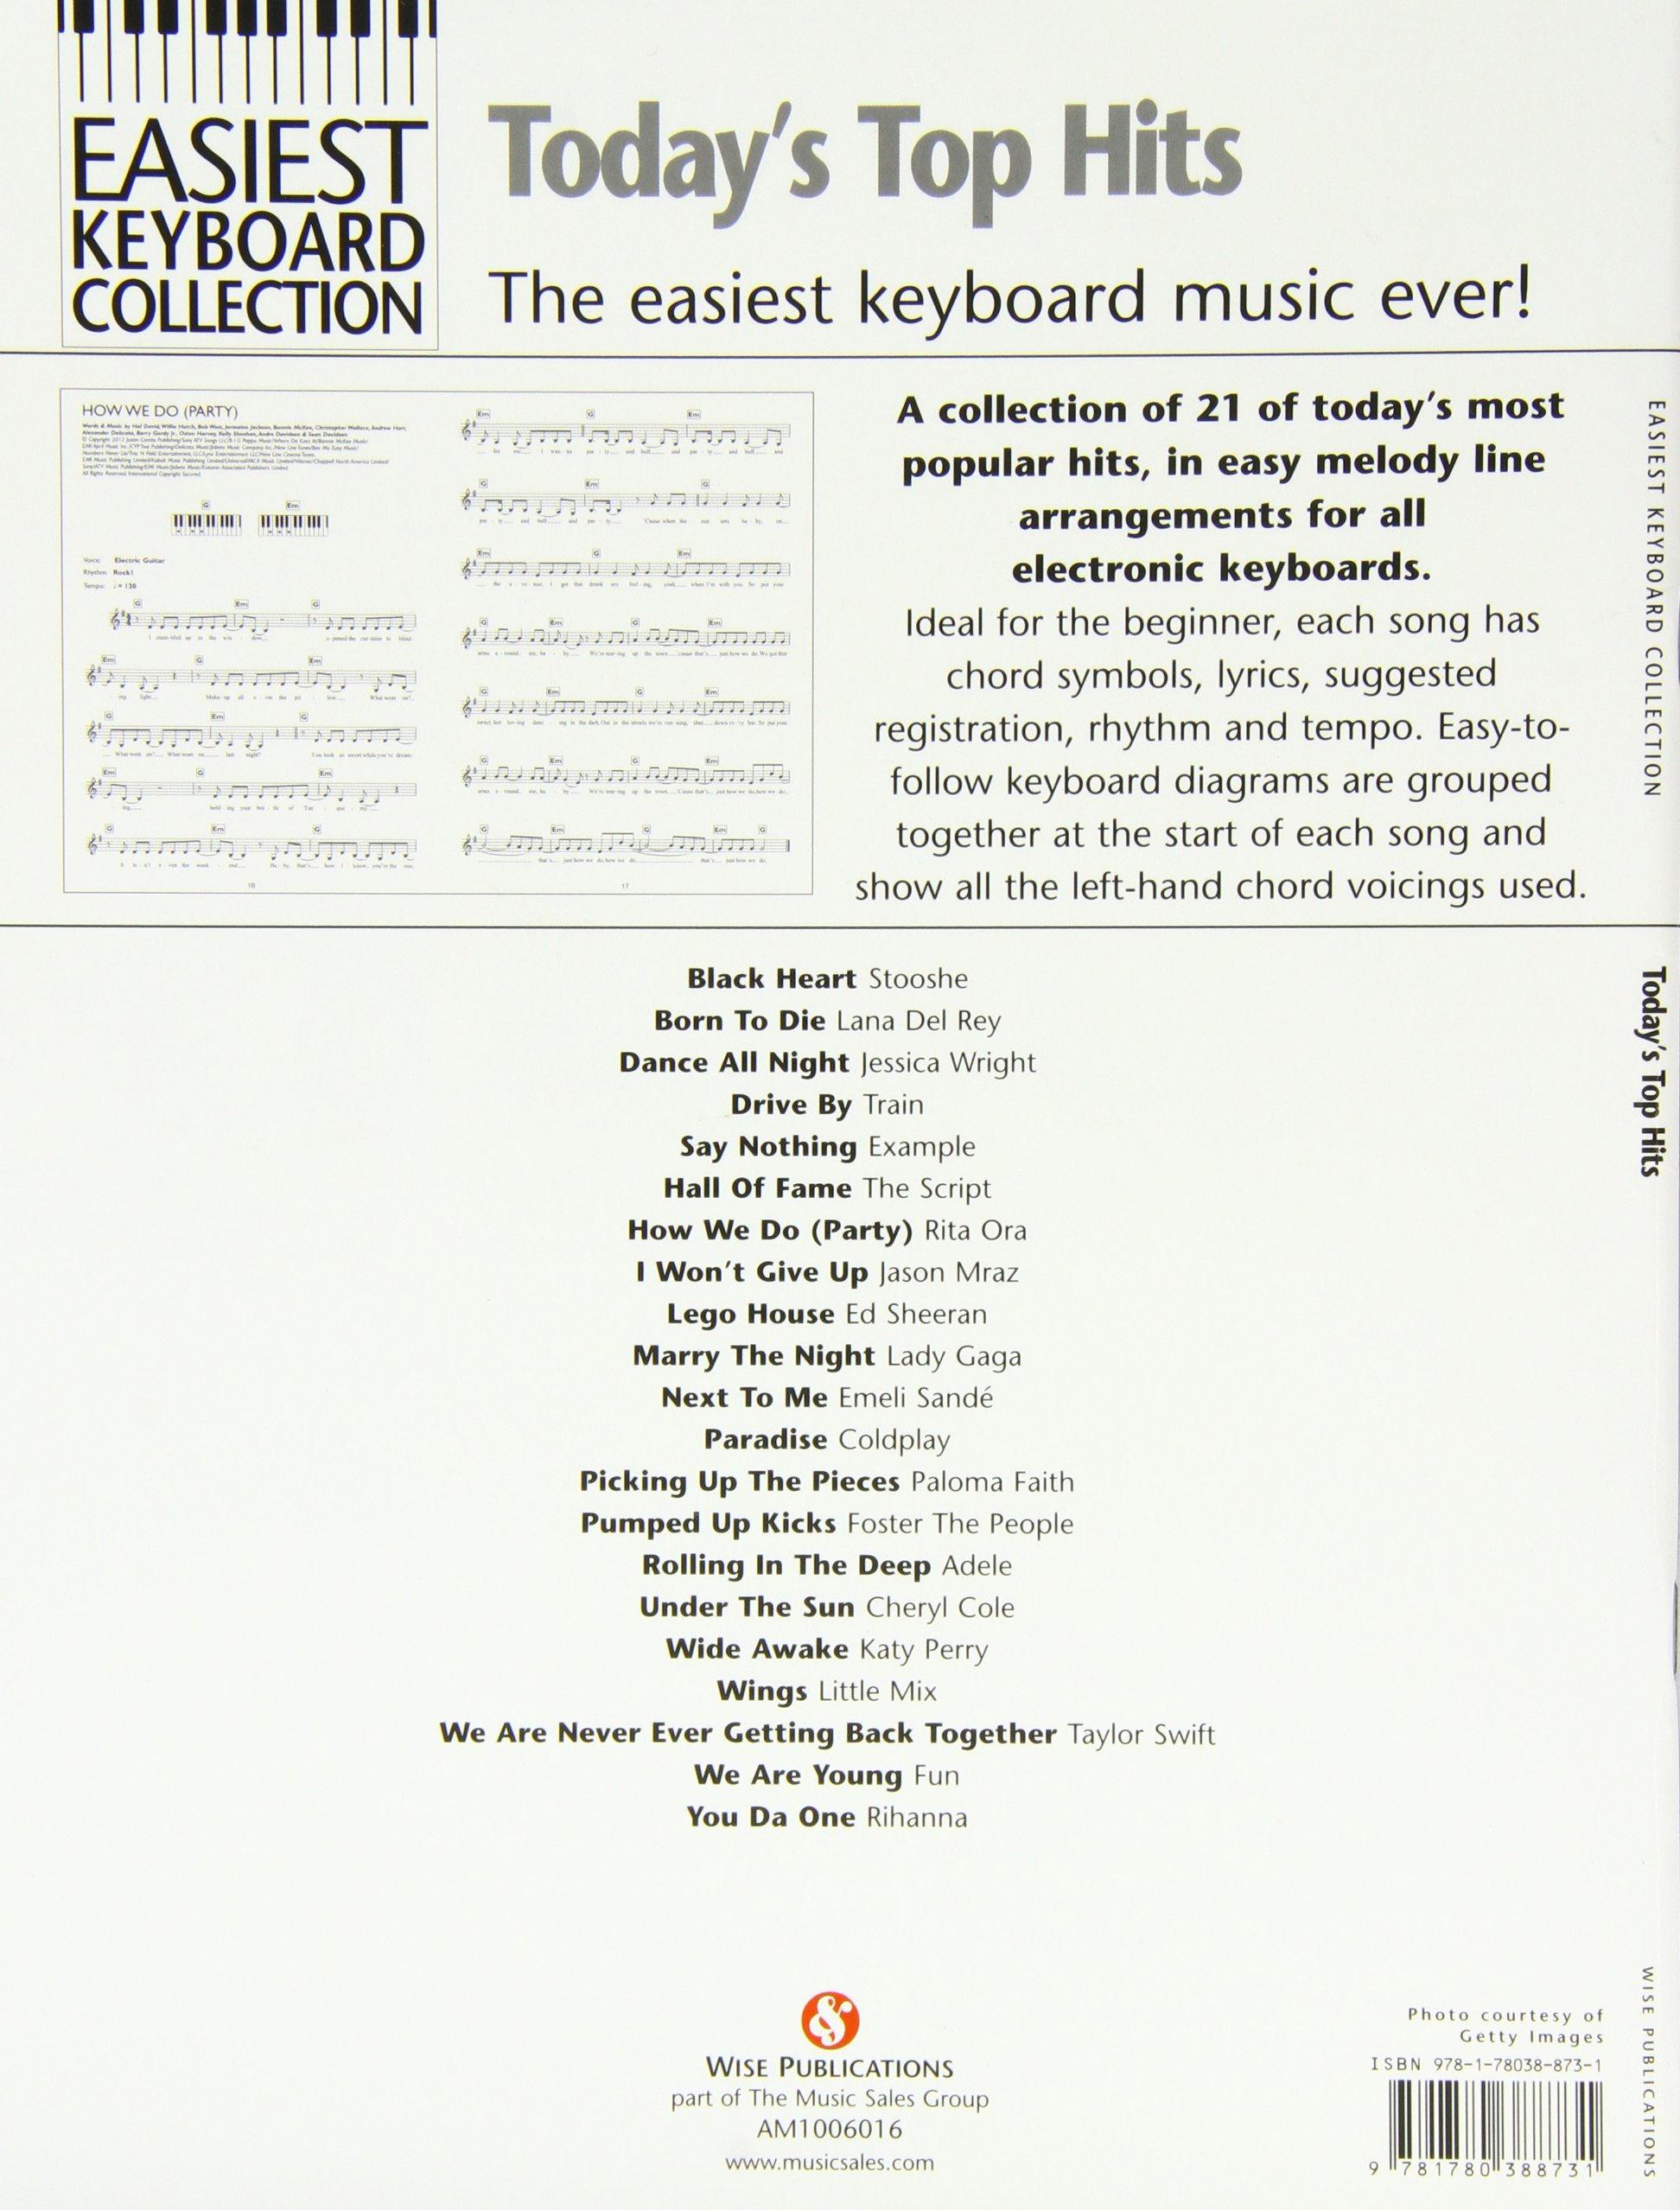 Easiest Keyboard Collection Todays Top Hits Amazon Divers